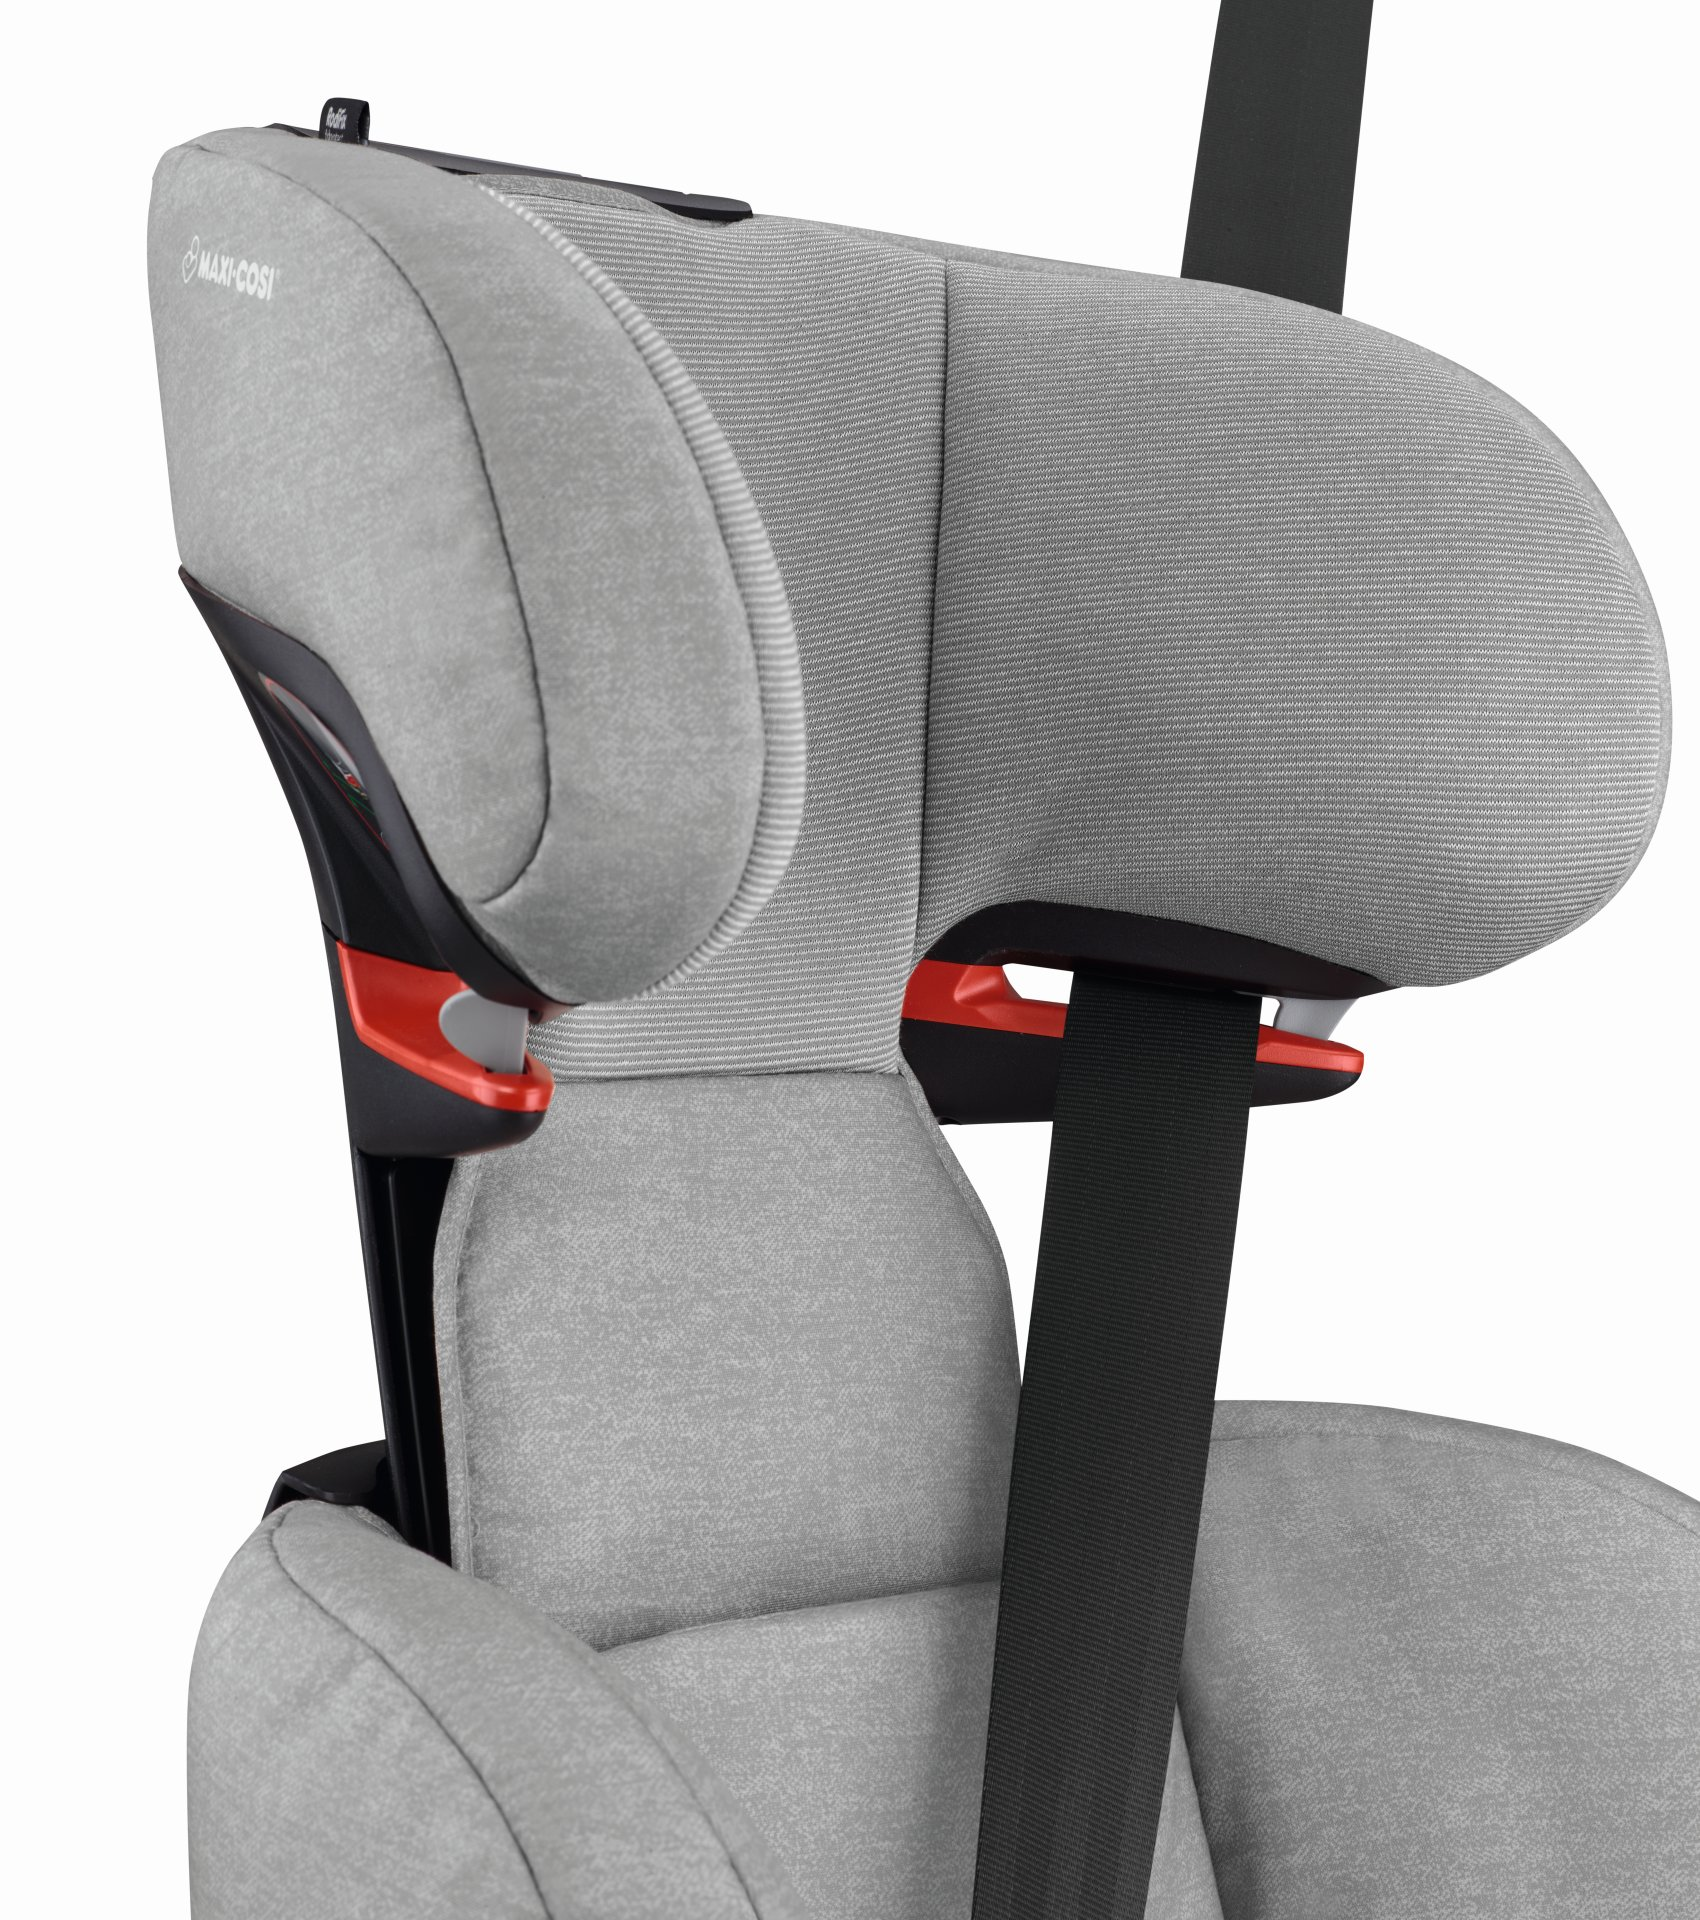 maxi cosi rodifix air protect isofix 2018 nomad grey kidsroom. Black Bedroom Furniture Sets. Home Design Ideas